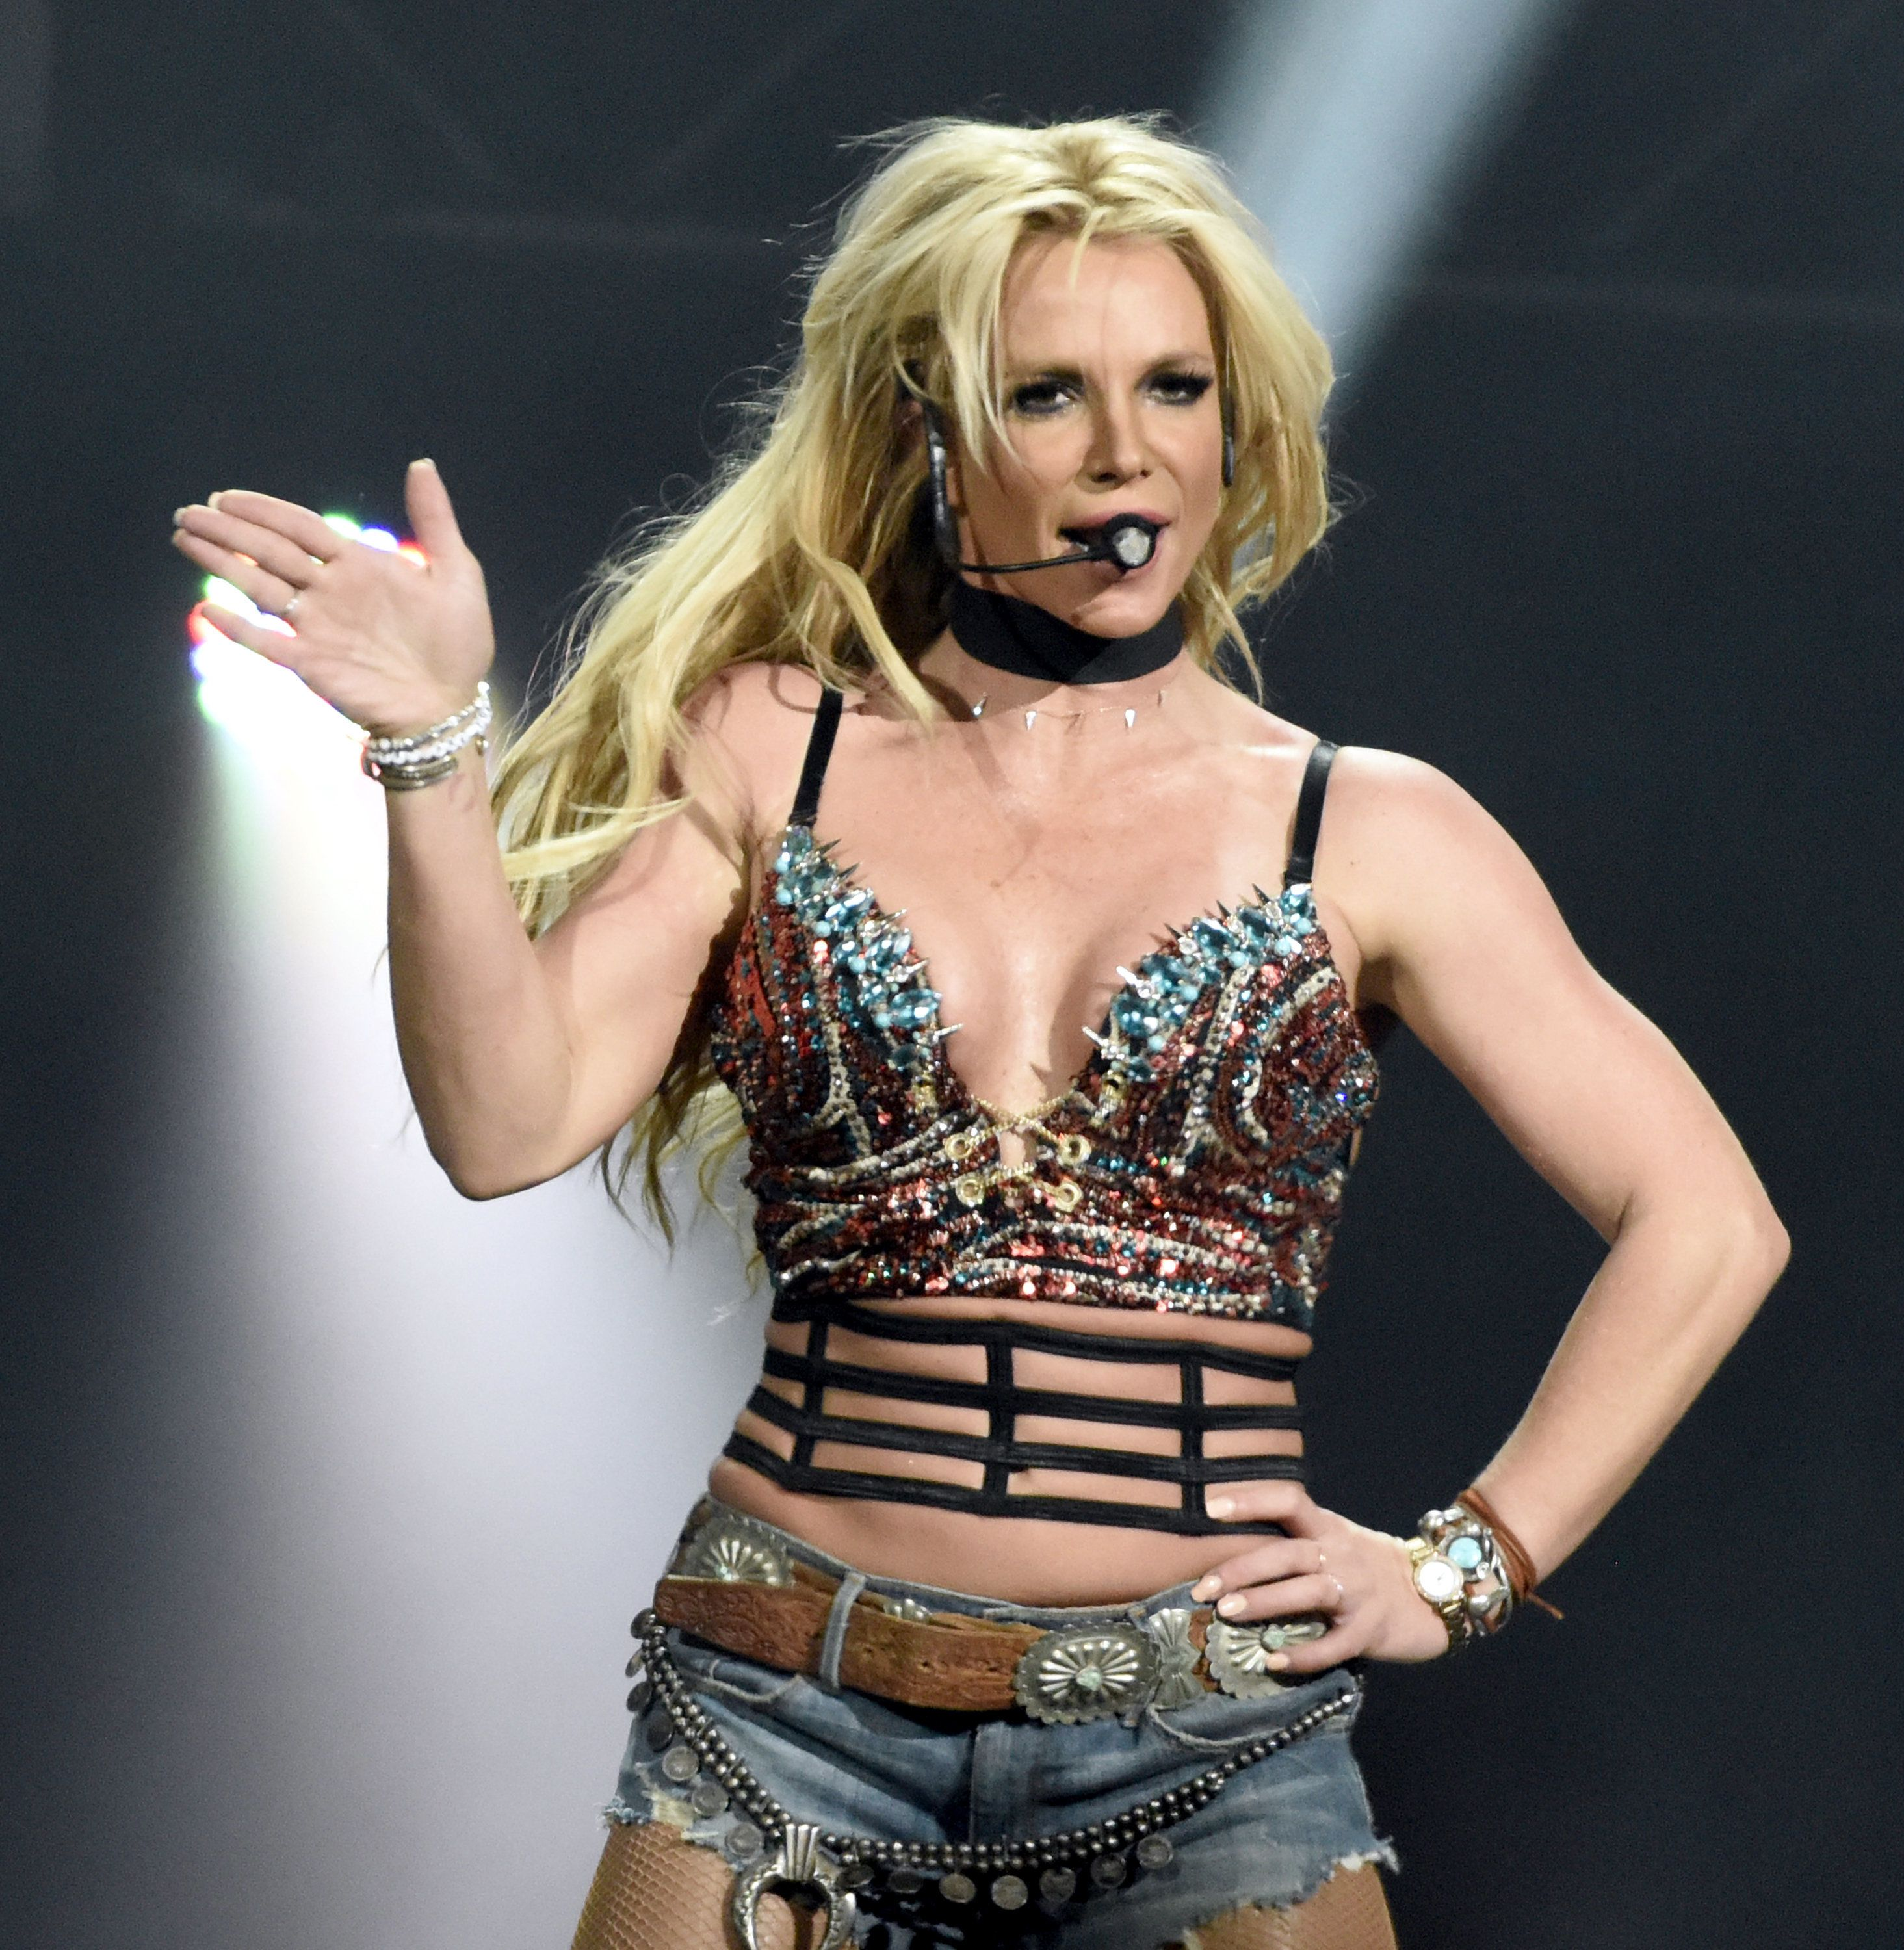 SAN JOSE, CA - DECEMBER 03:  Britney Spears performs during Now! 99.7 Triple Ho Show 7.0 at SAP Center on December 3, 2016 in San Jose, California.  (Photo by Tim Mosenfelder/Getty Images)